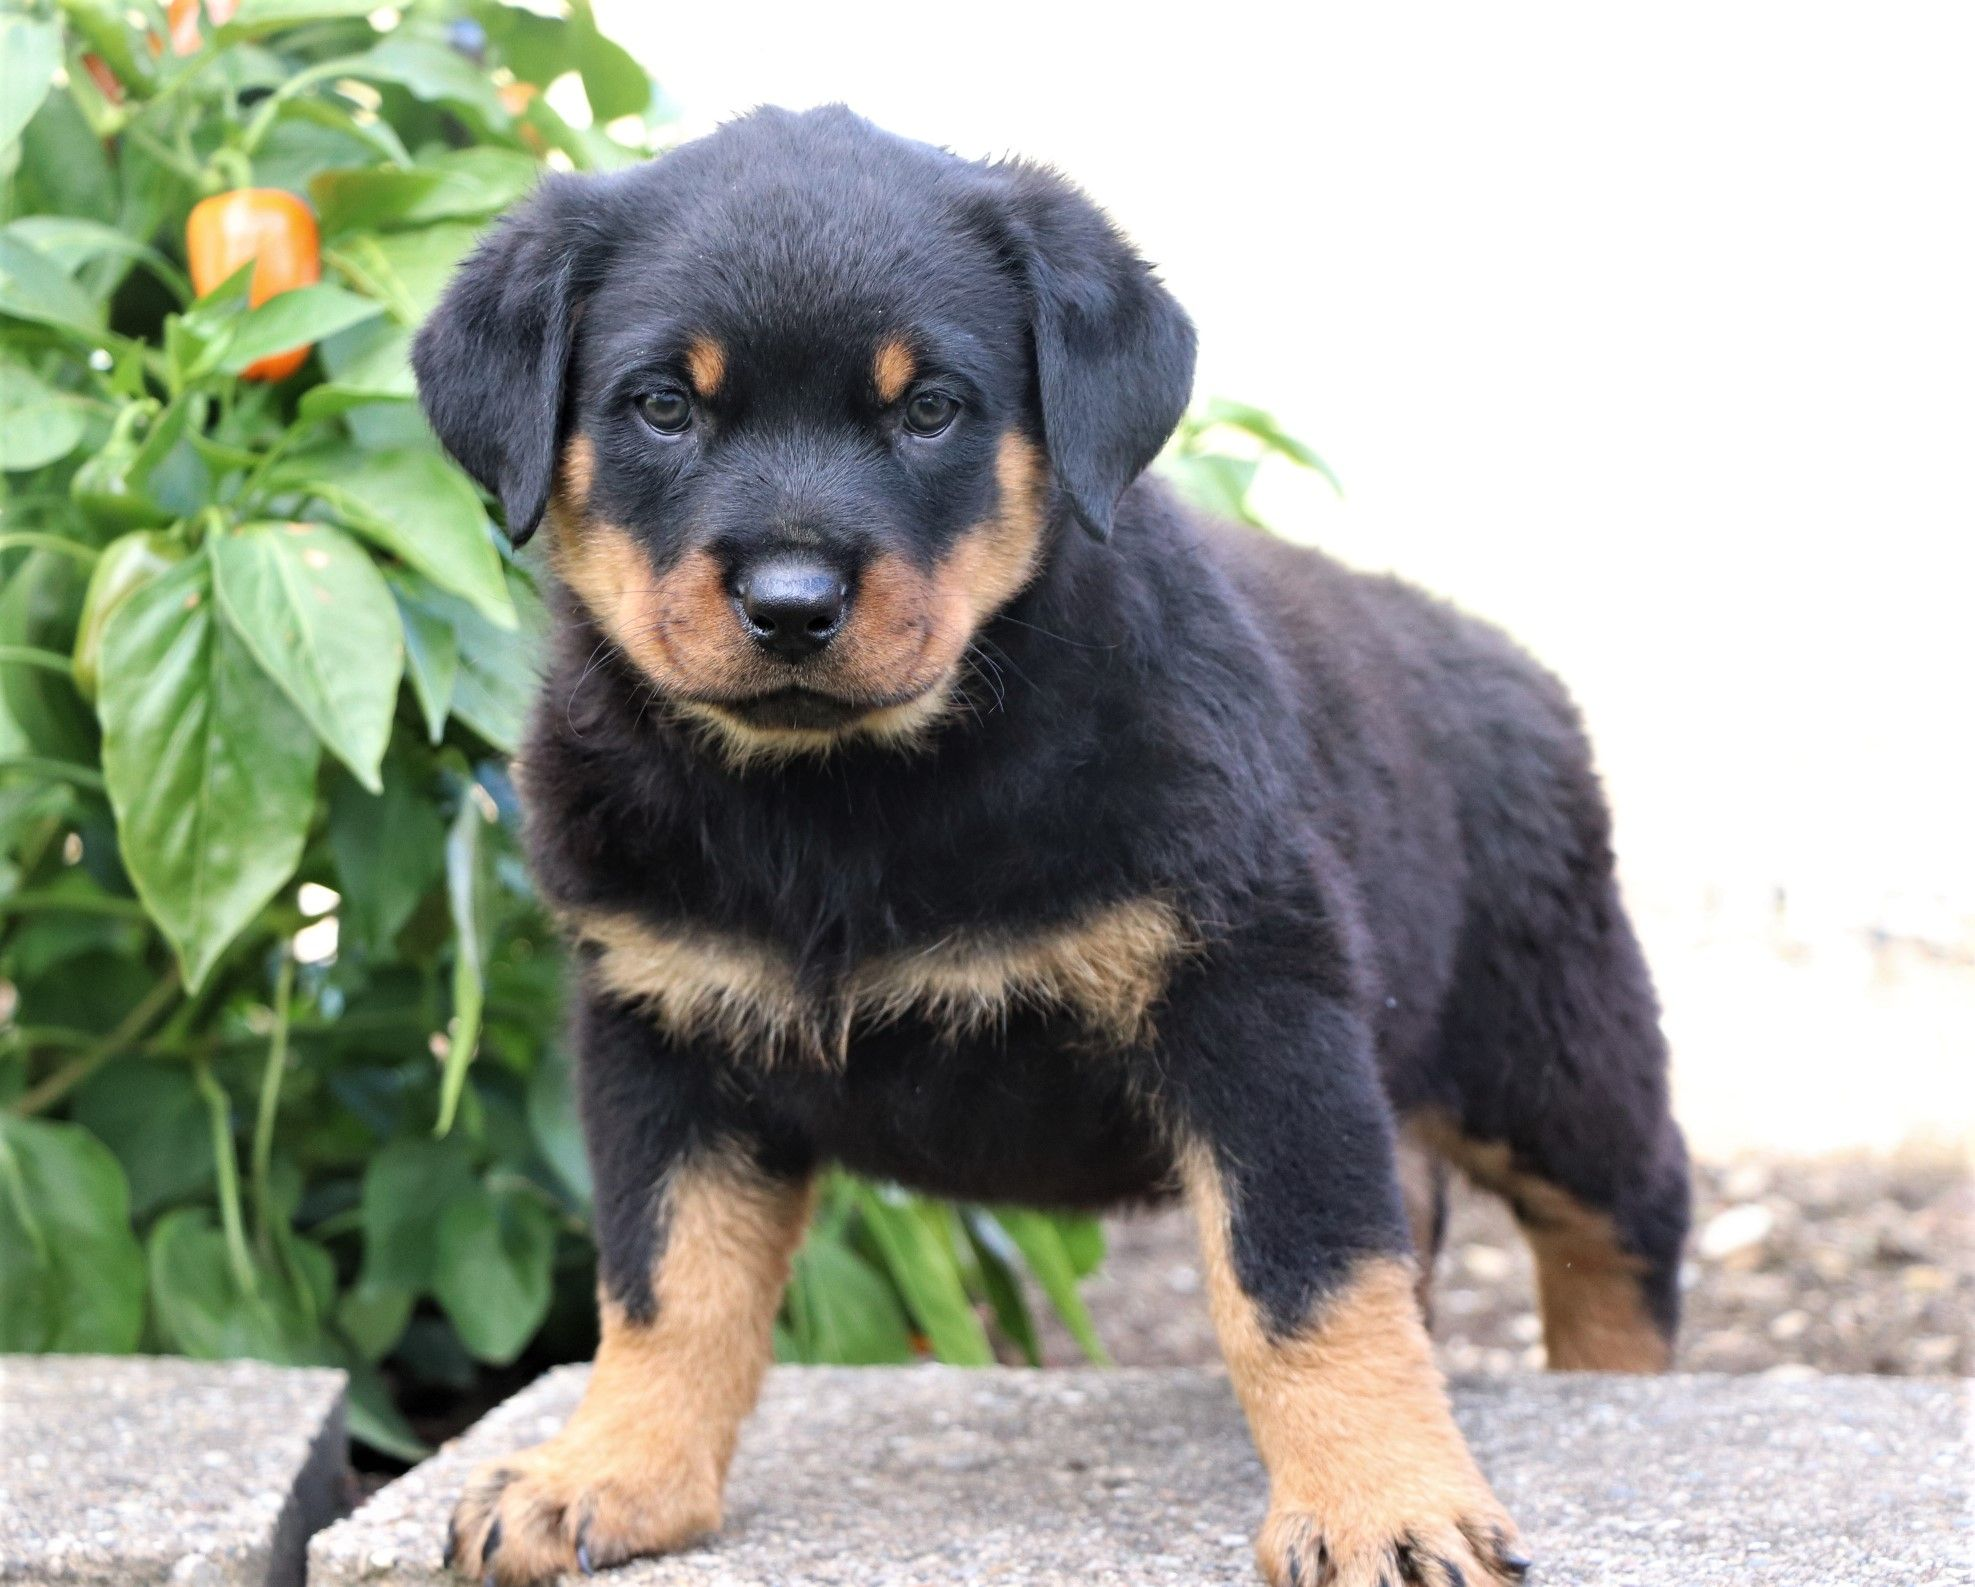 Beautiful Obedient Intelligent Are Only A Few Words To Describe The Rottweiler The Rott Rottweiler Puppies Rottweiler Rottweiler Puppies For Sale